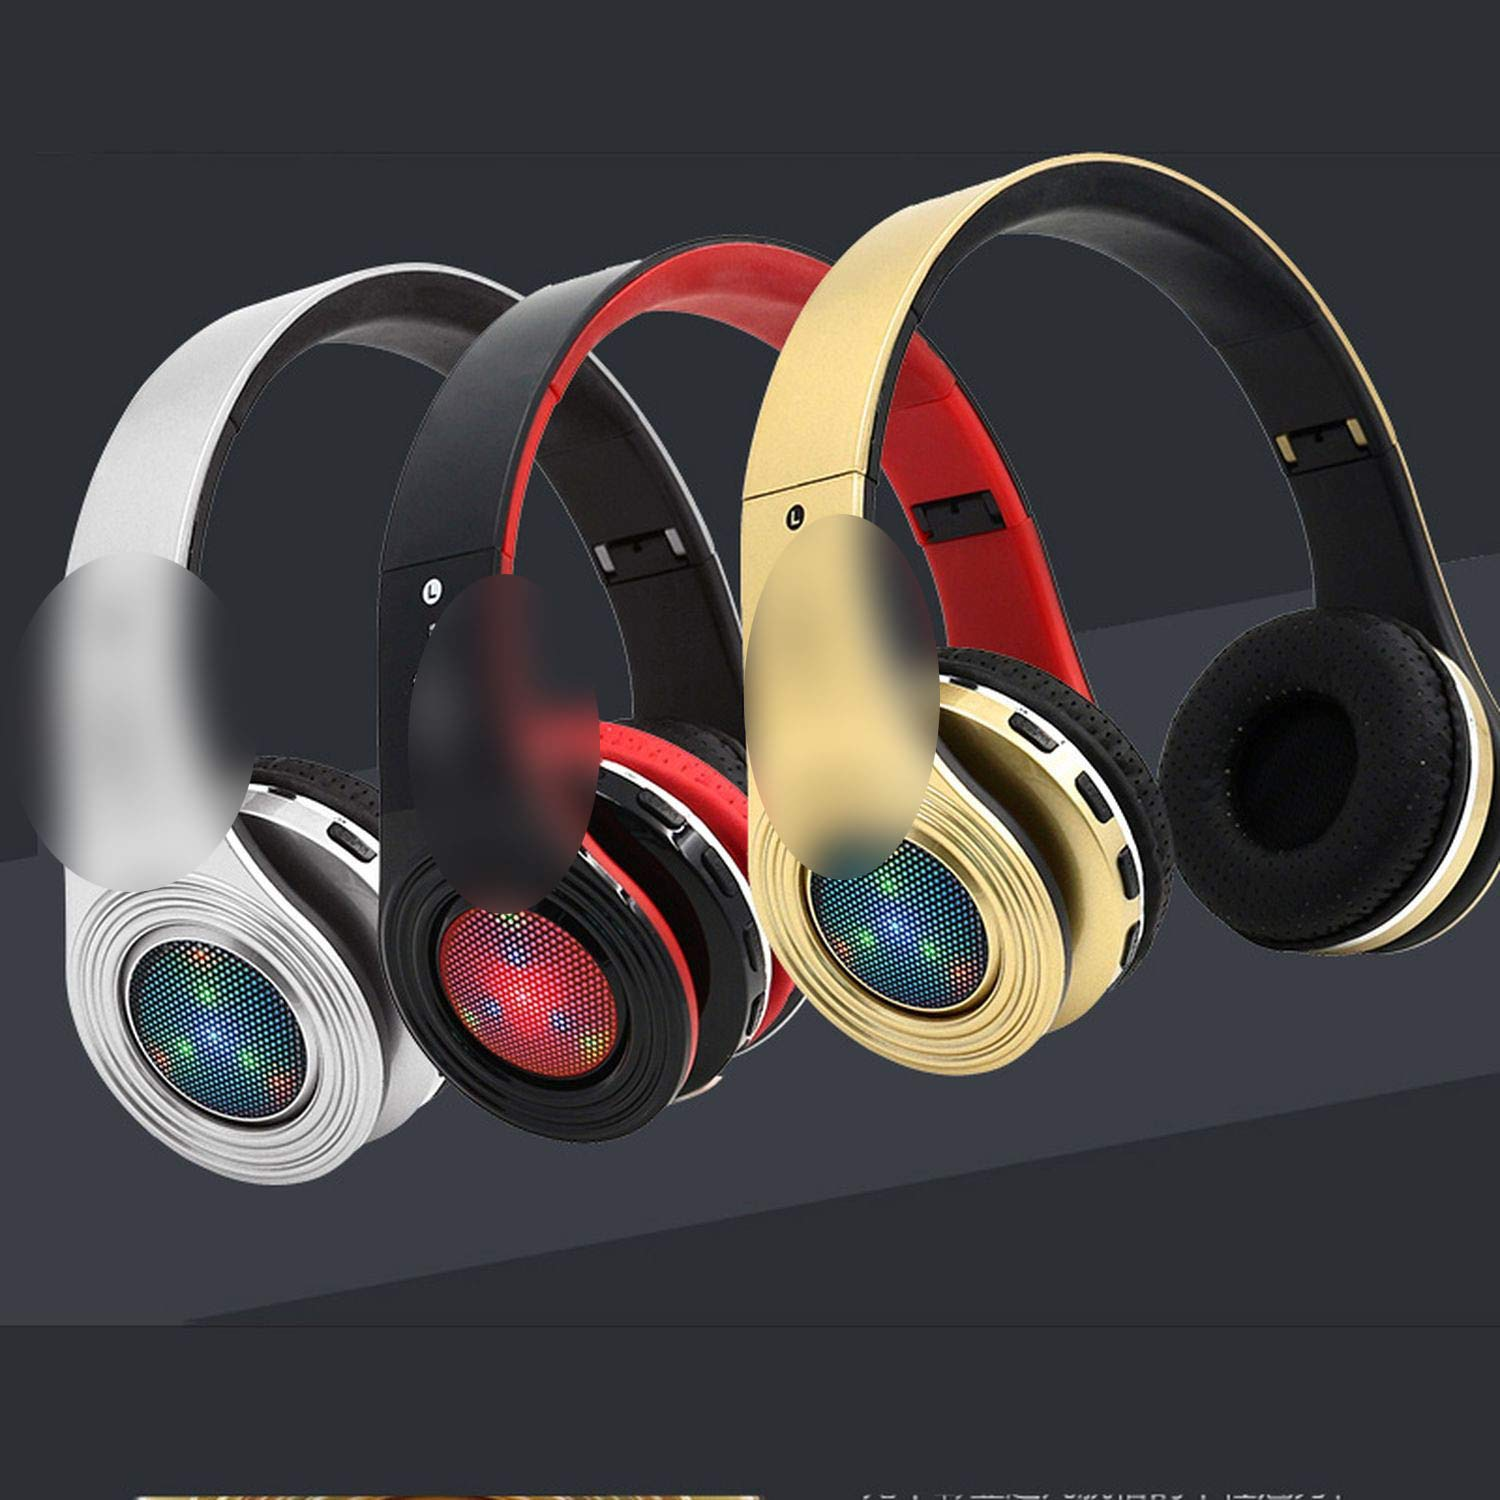 Amazon.com: Glowing Bluetooth Fone Stereo Bass Headsets Built-in Mic LED TF FM Radio for Phones PC,Blue: Cell Phones & Accessories